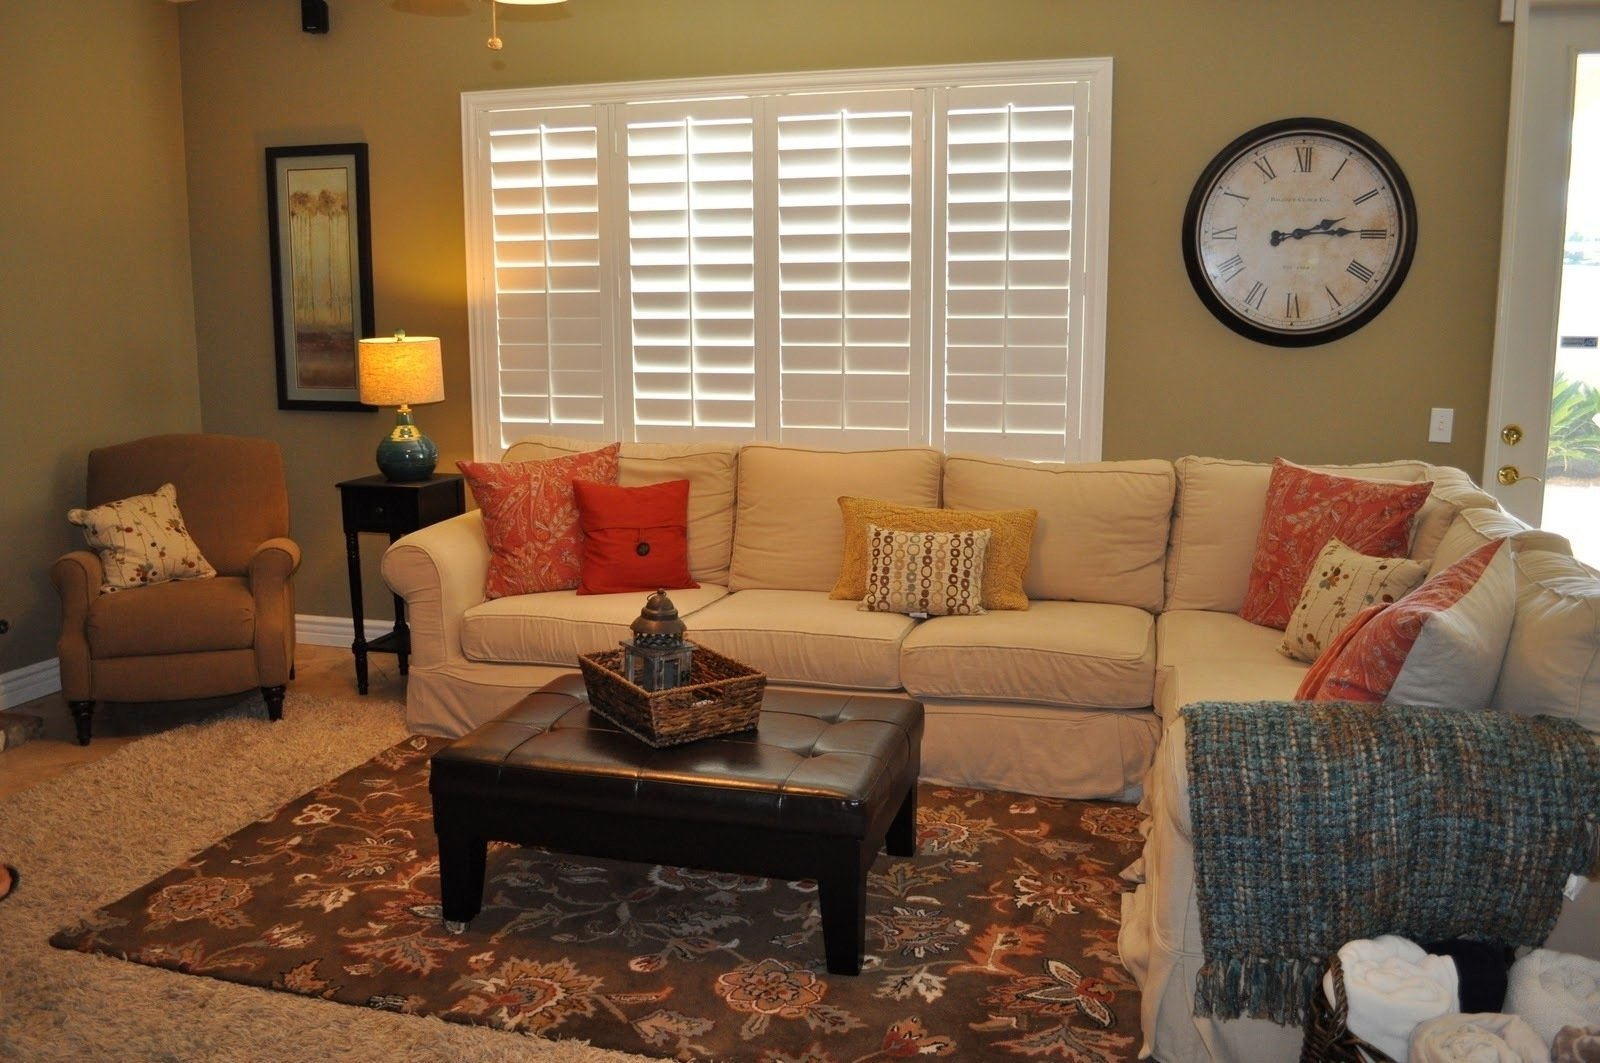 10 Lovable Decorating Ideas For Family Room small family room decorating ideas with carpet design and large wall 2021